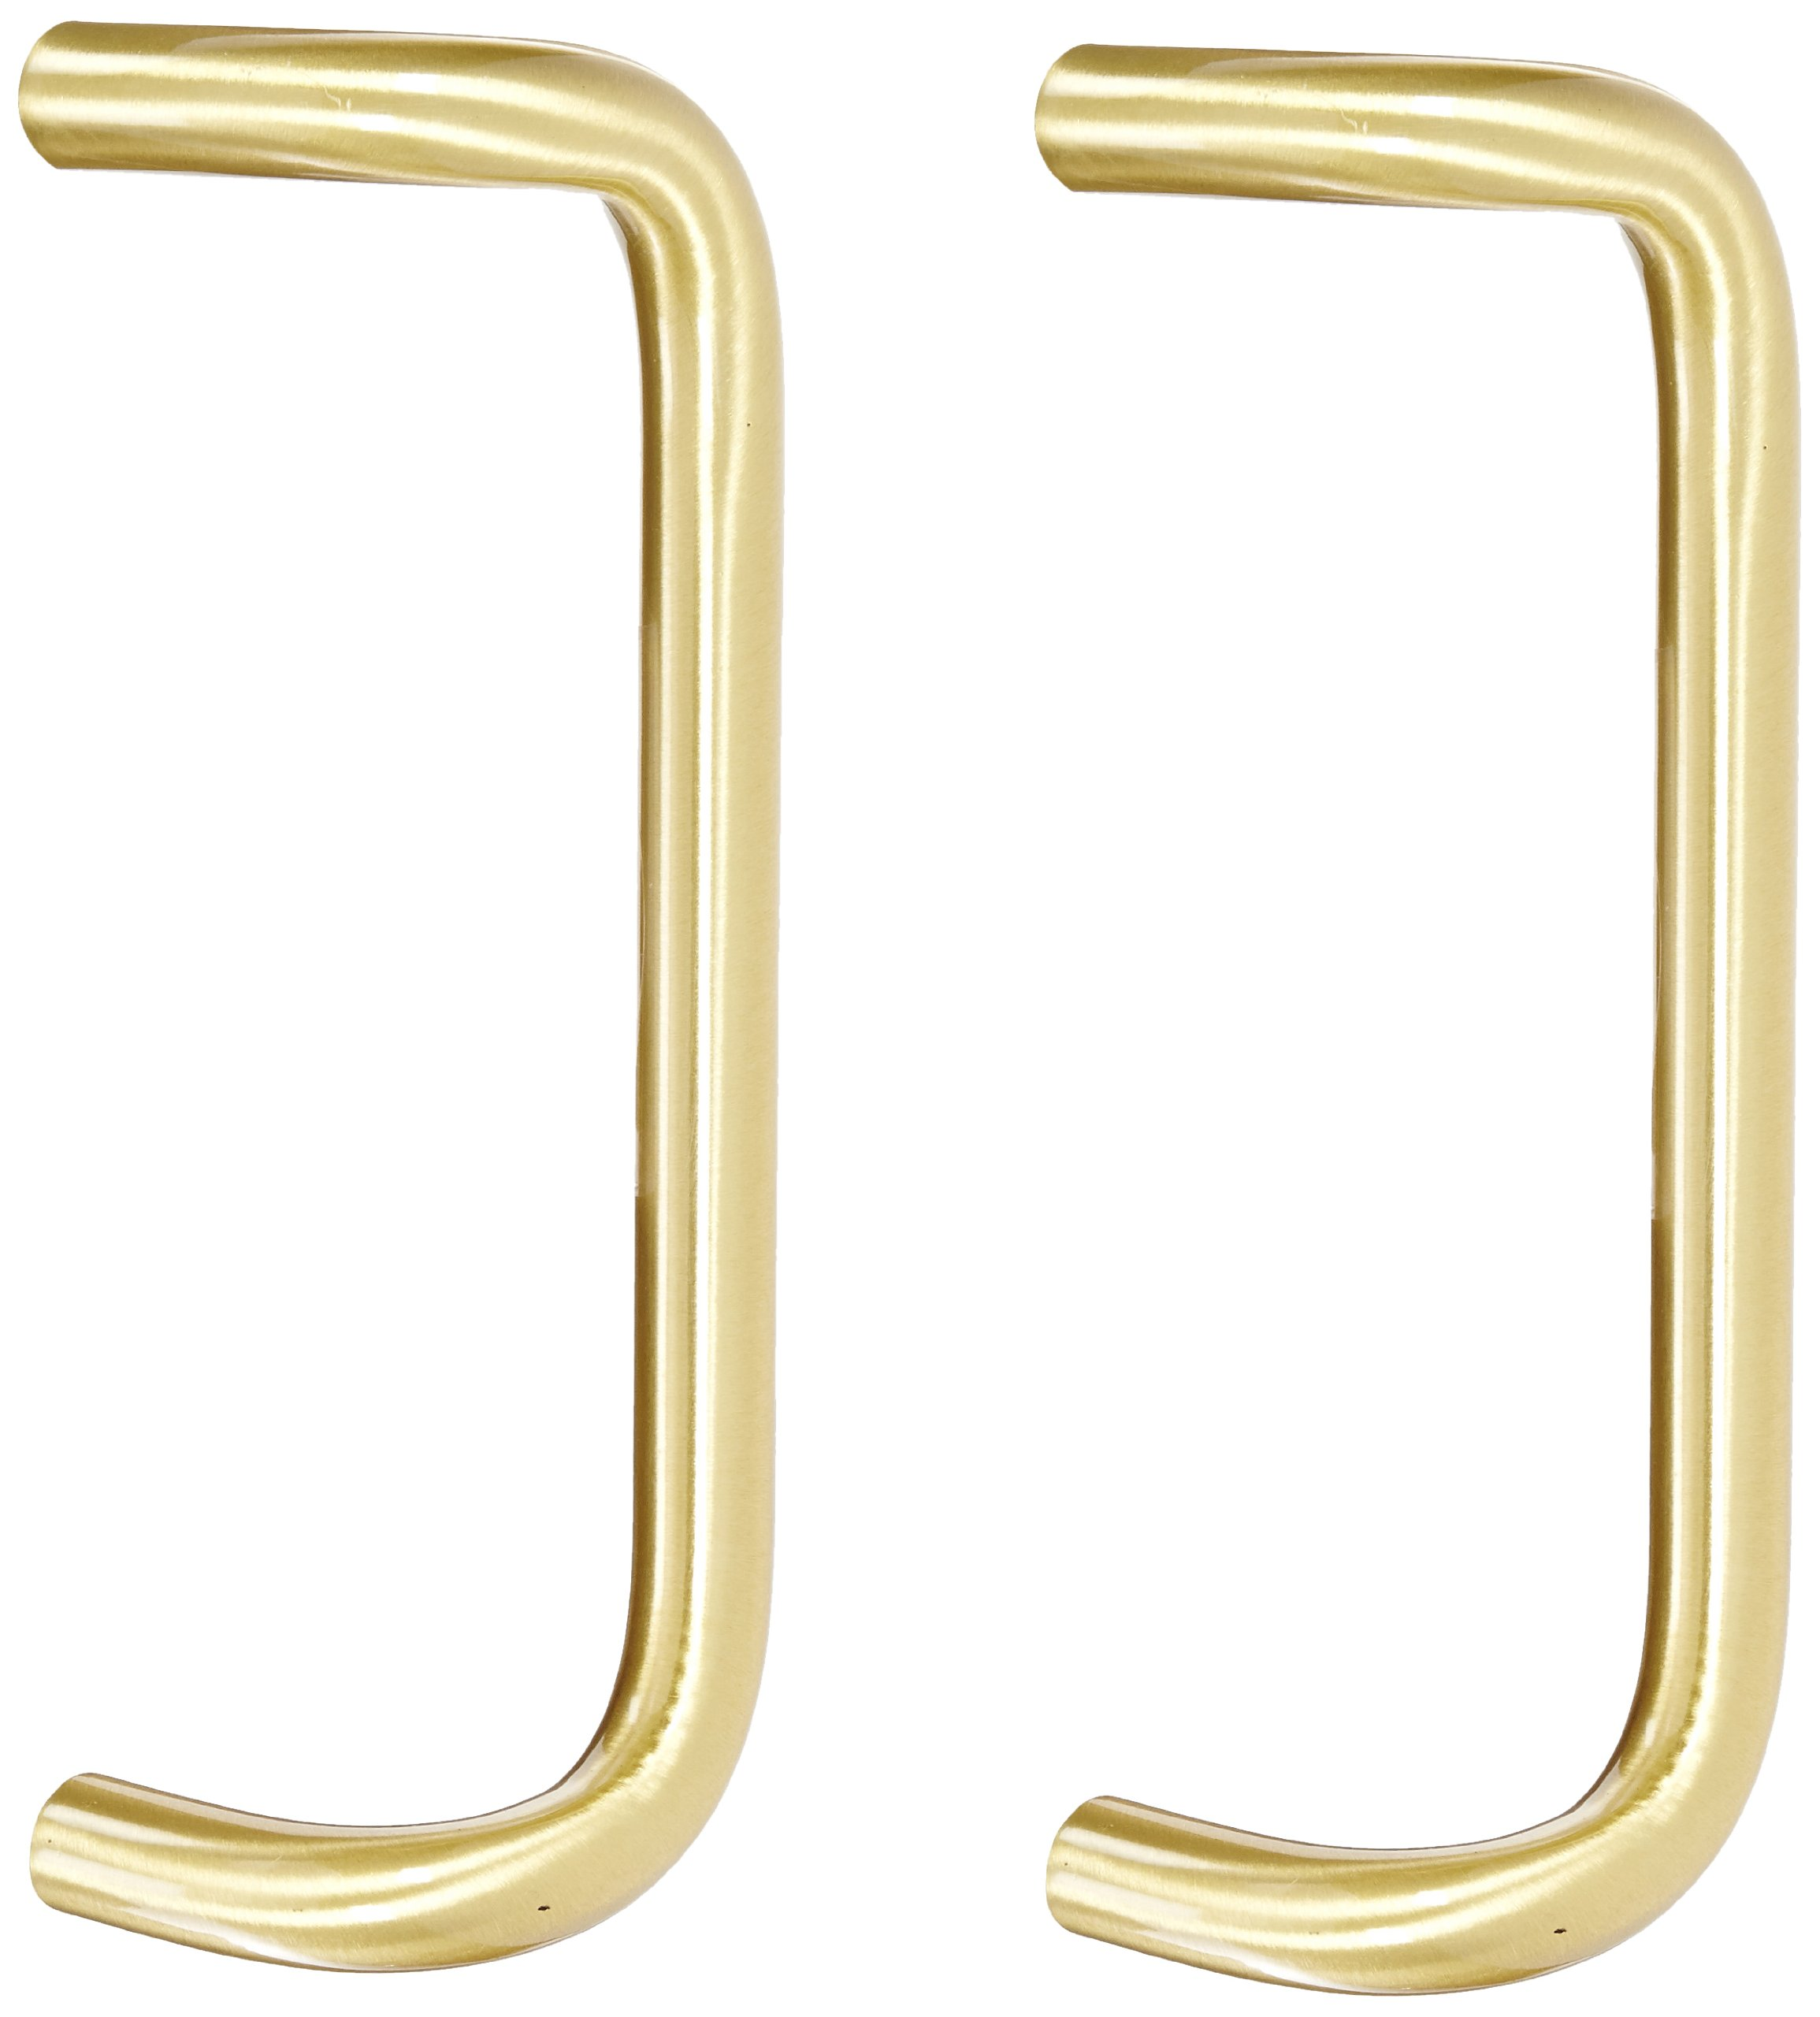 Rockwood BF158BTB16.4 Brass 90-Degree Offset Door Pull, 1'' Diameter x 12'' Center-to-Center, Back To Back Mounting for 1-3/4'' Door, Satin Clear Coated Finish